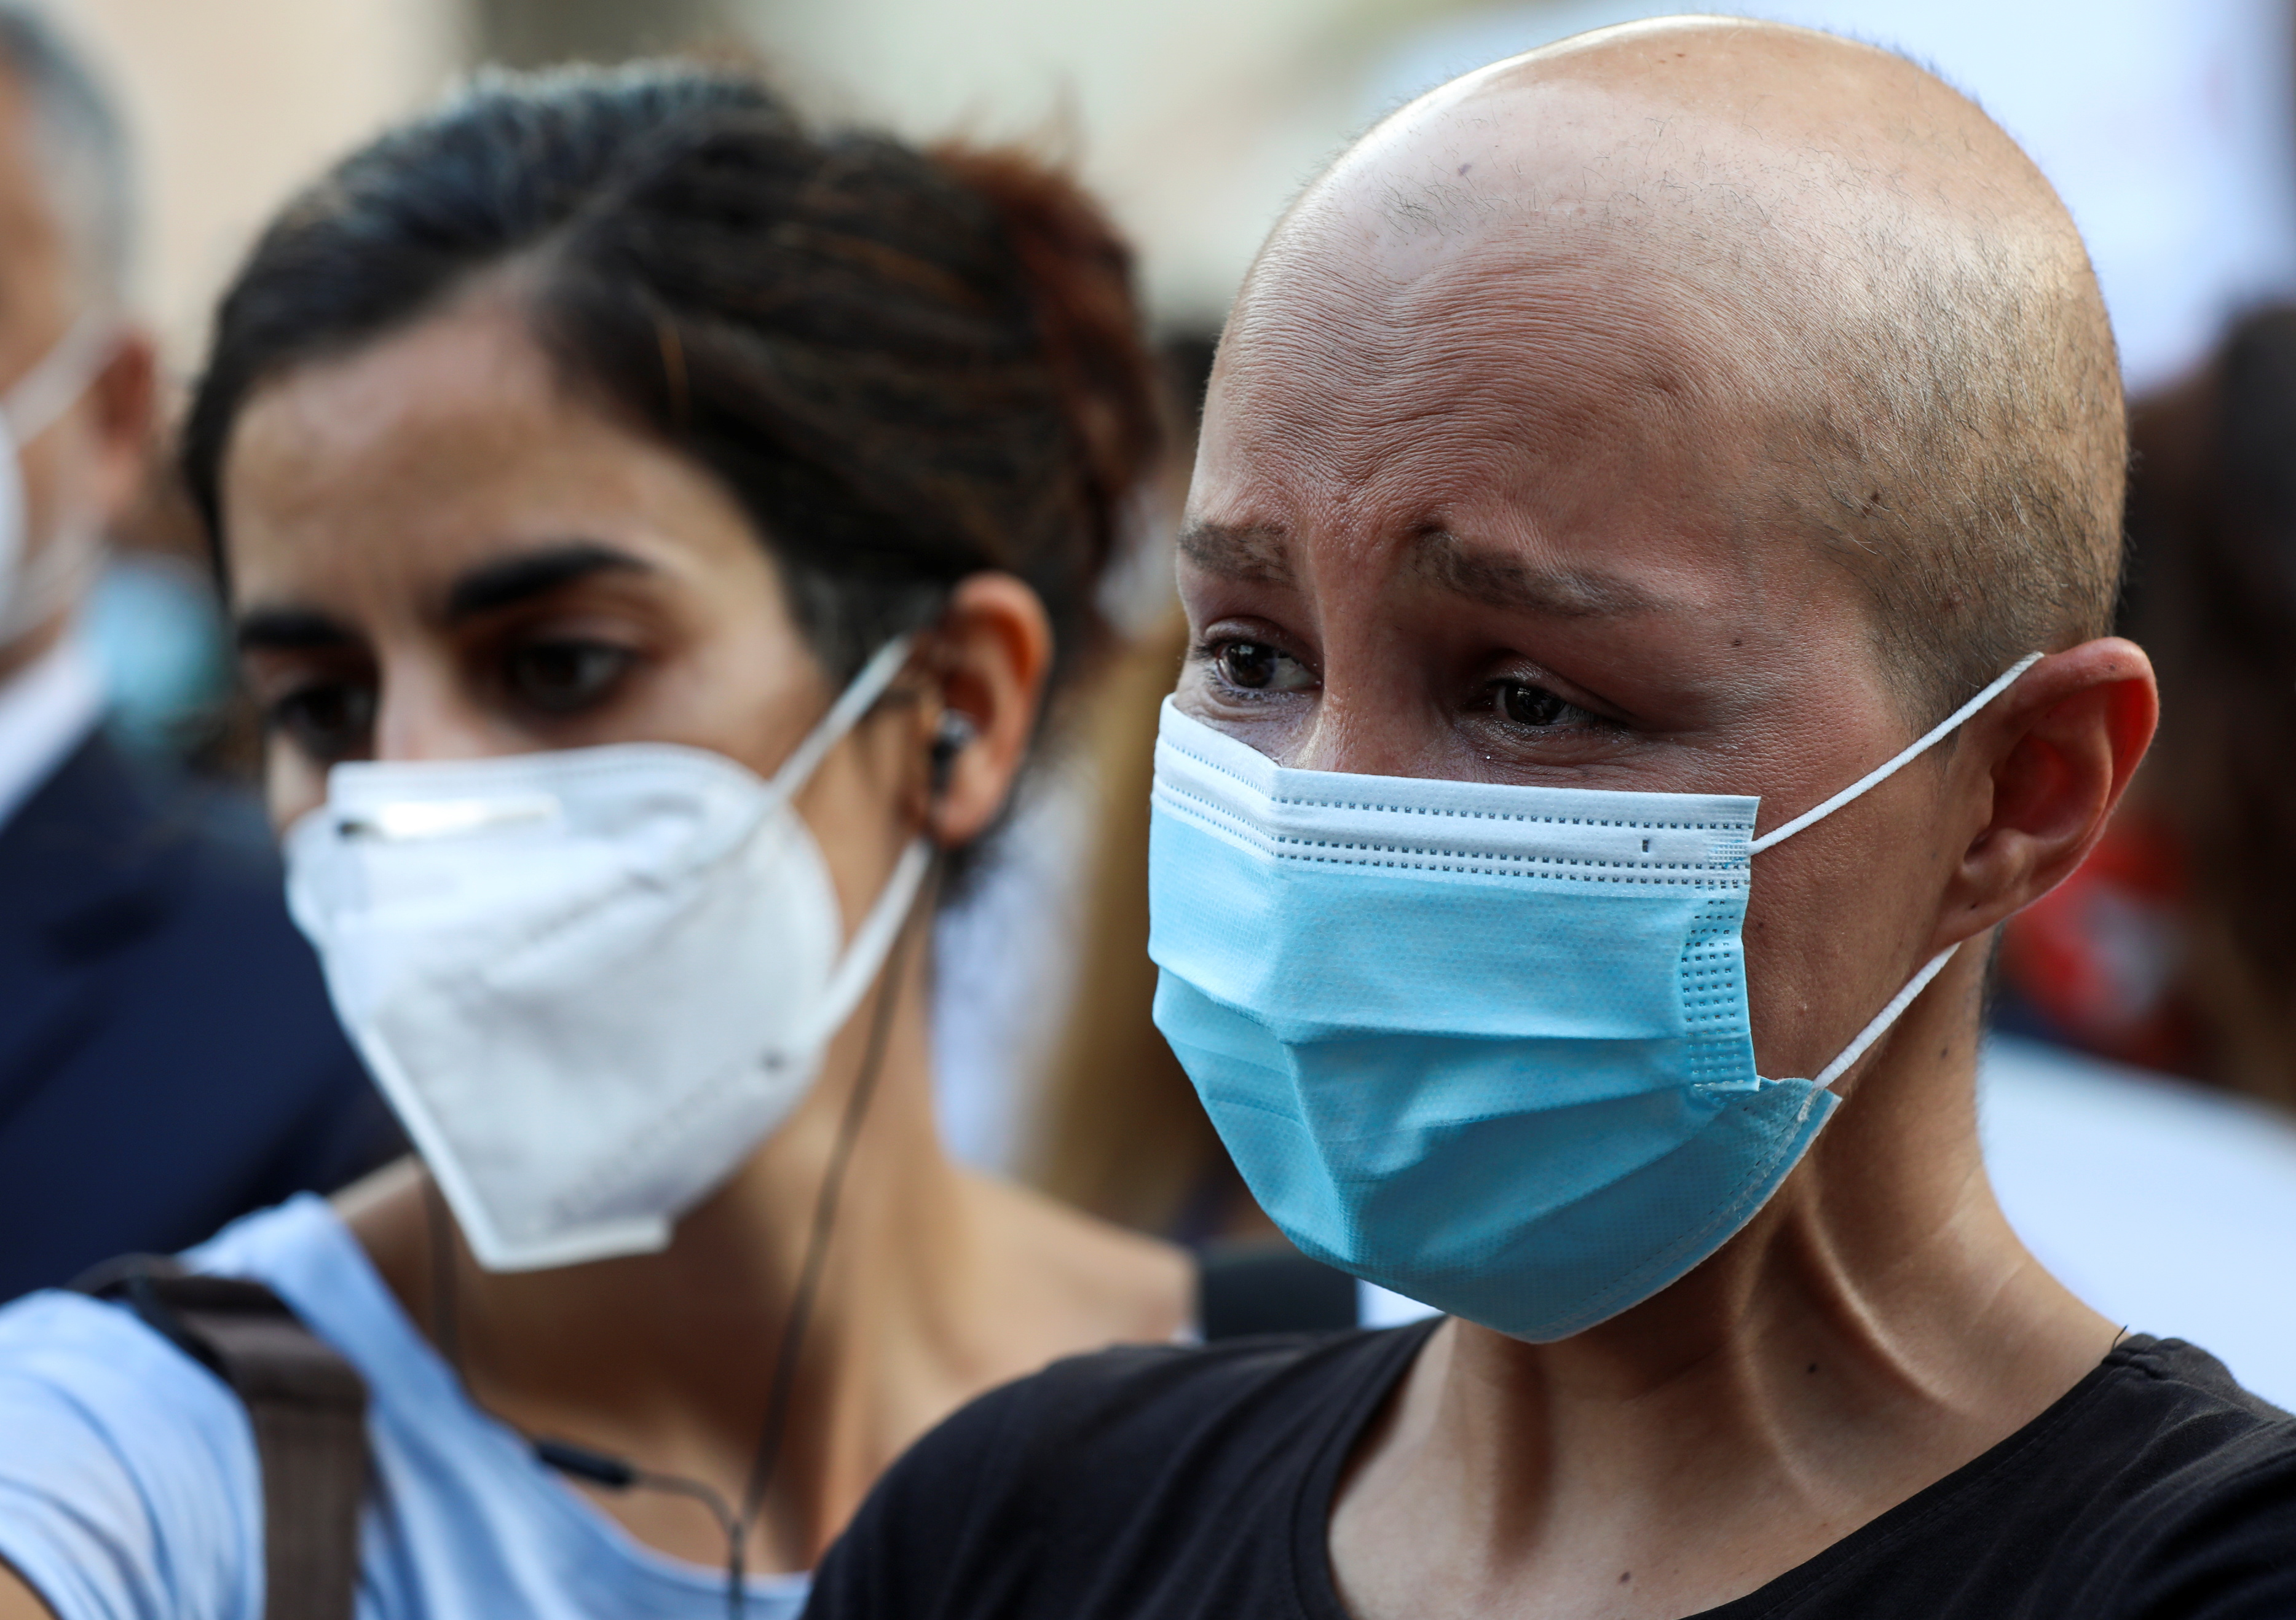 Engineer Bahaa Costantine, a cancer patient, reacts during a sit-in demonstration as shortages of cancer medications spread, in front of the U.N. headquarters in Beirut, Lebanon August 26, 2021. REUTERS/Mohamed Azakir